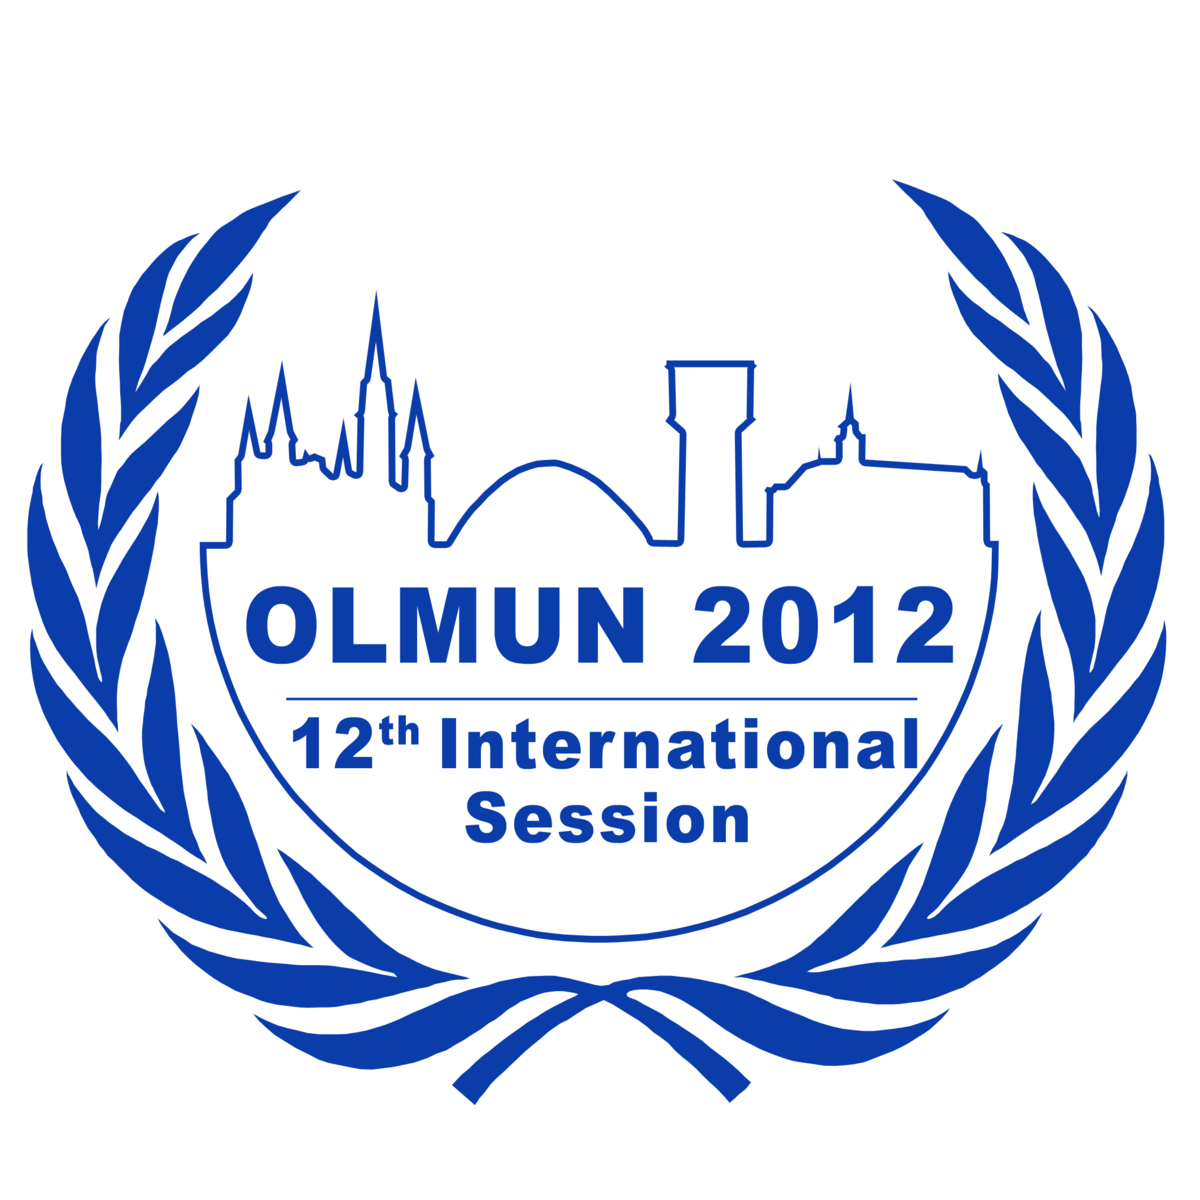 model united nations University of reading international model united nations conference important news congratulations to everyone on your a level results if you are thinking of trying model united nations then as a beginner's conference, readimun is a fantastic place to start.